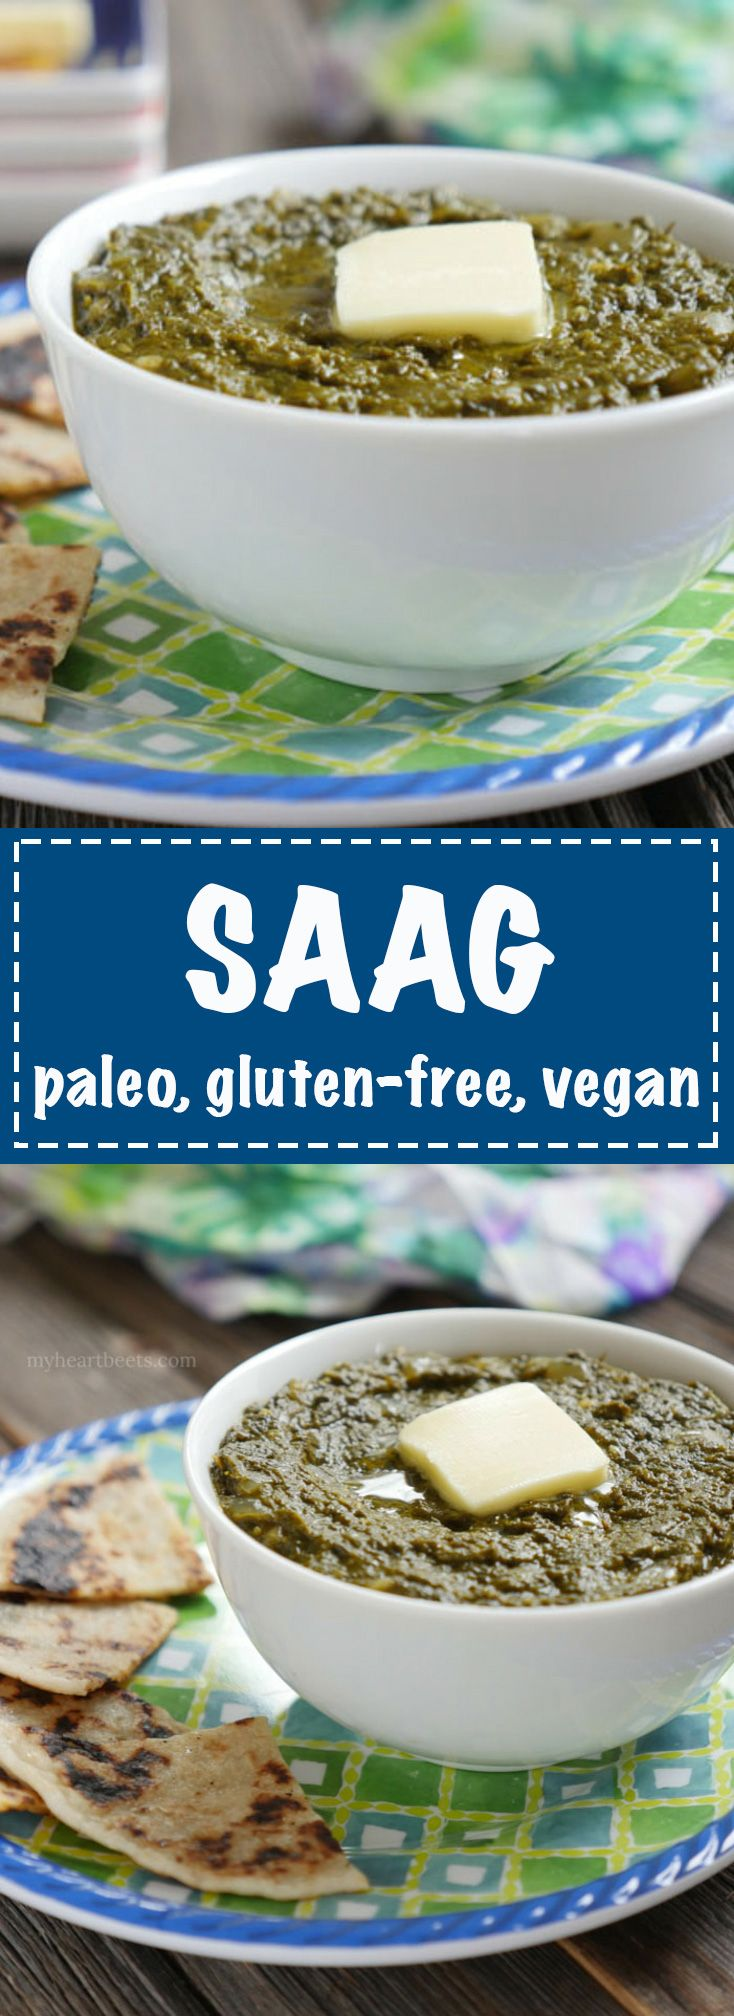 You'd never guess that this saag is paleo-friendly!! It calls for ghee but it's easy to make it vegan too!